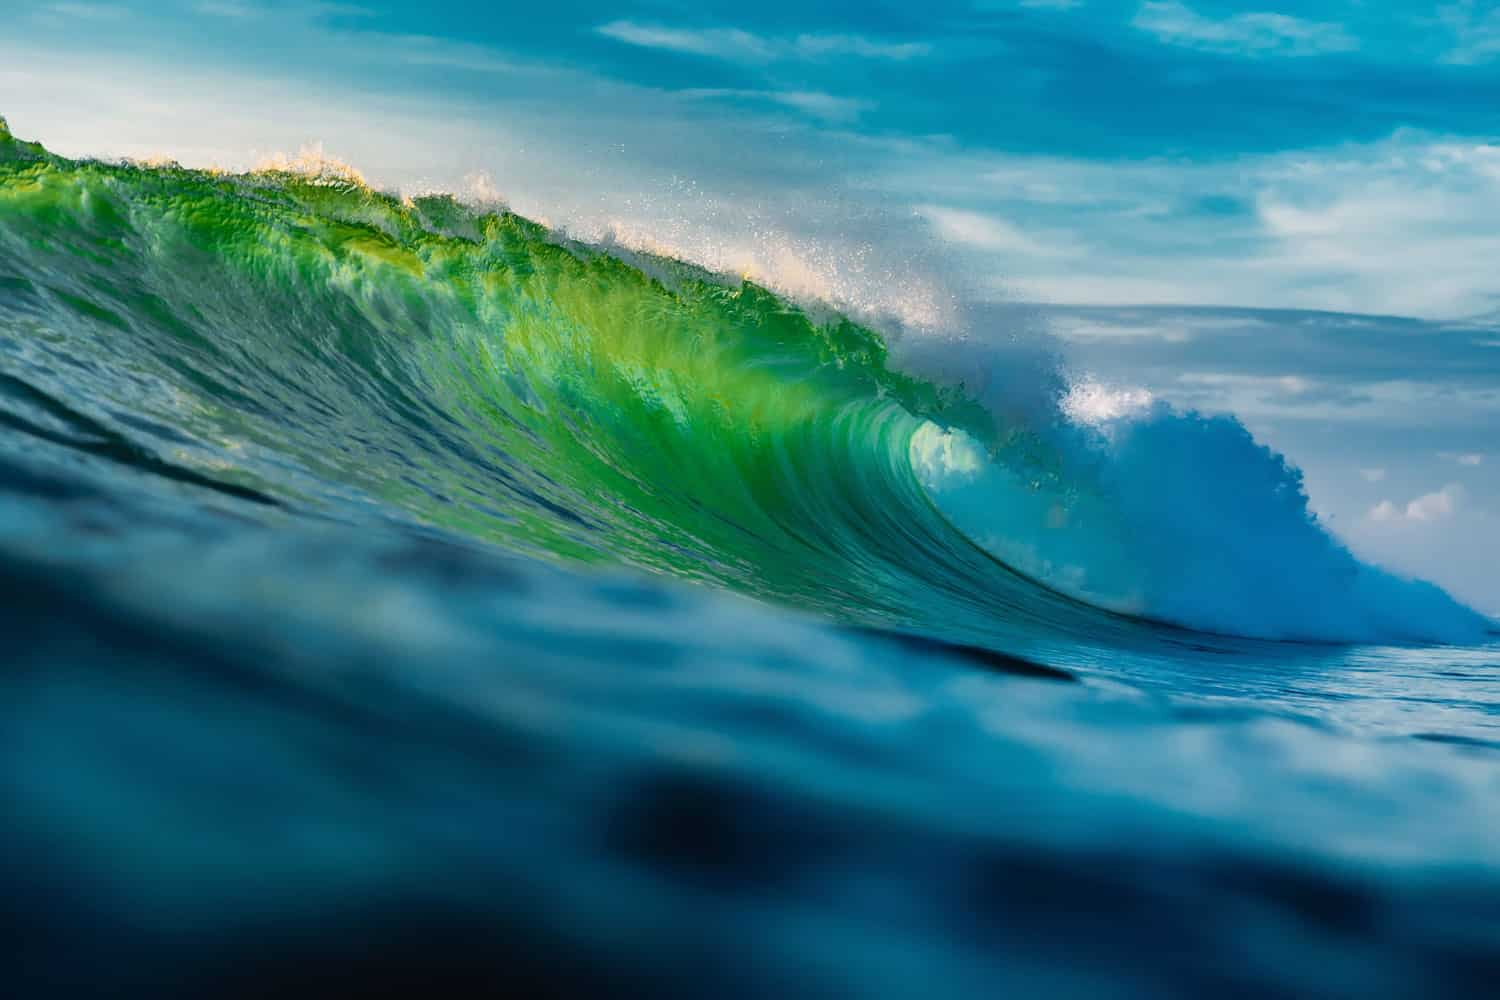 A perfect crest of a wave beaming green due to sunlight